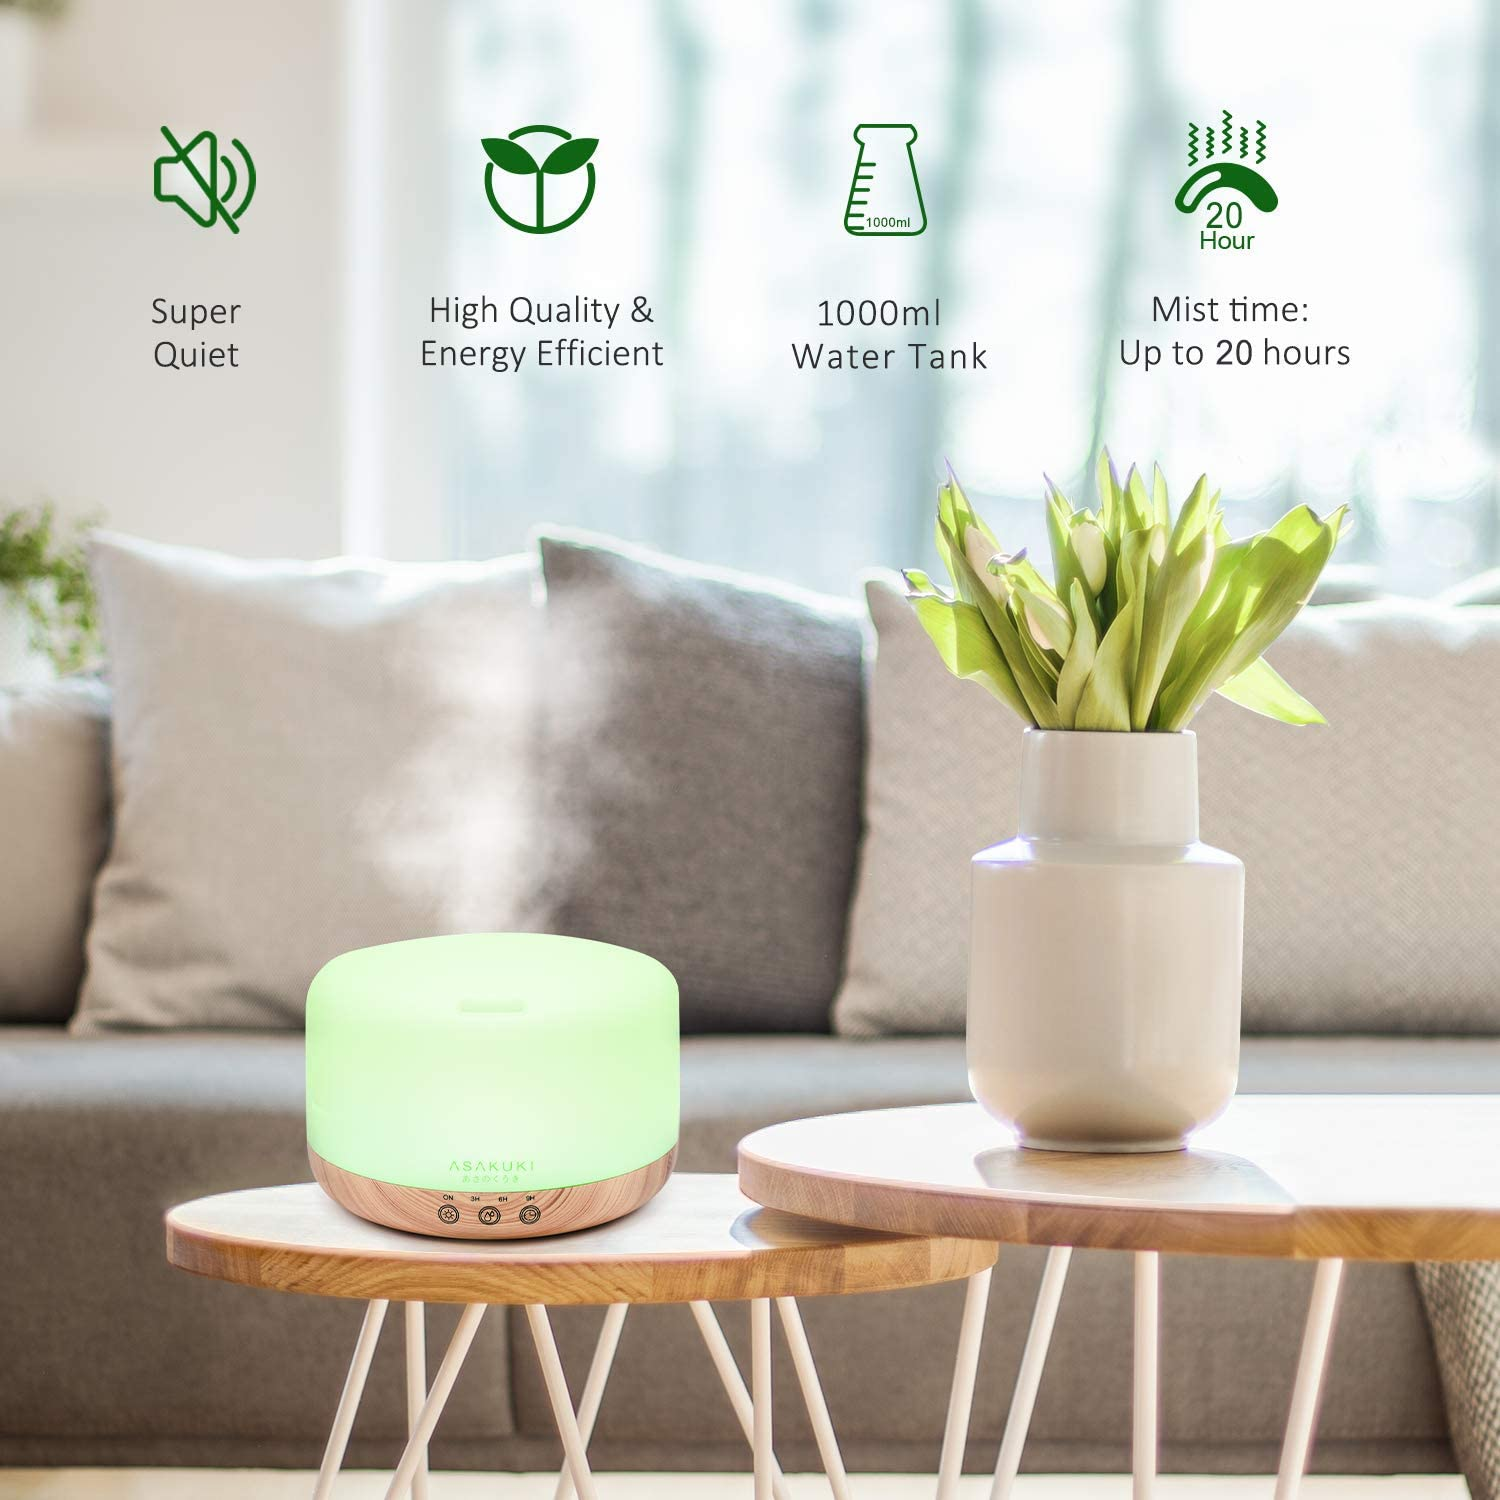 ASAKUKI 1000ML Large Remote Control Essential Oil Diffuser for Aromatherapy